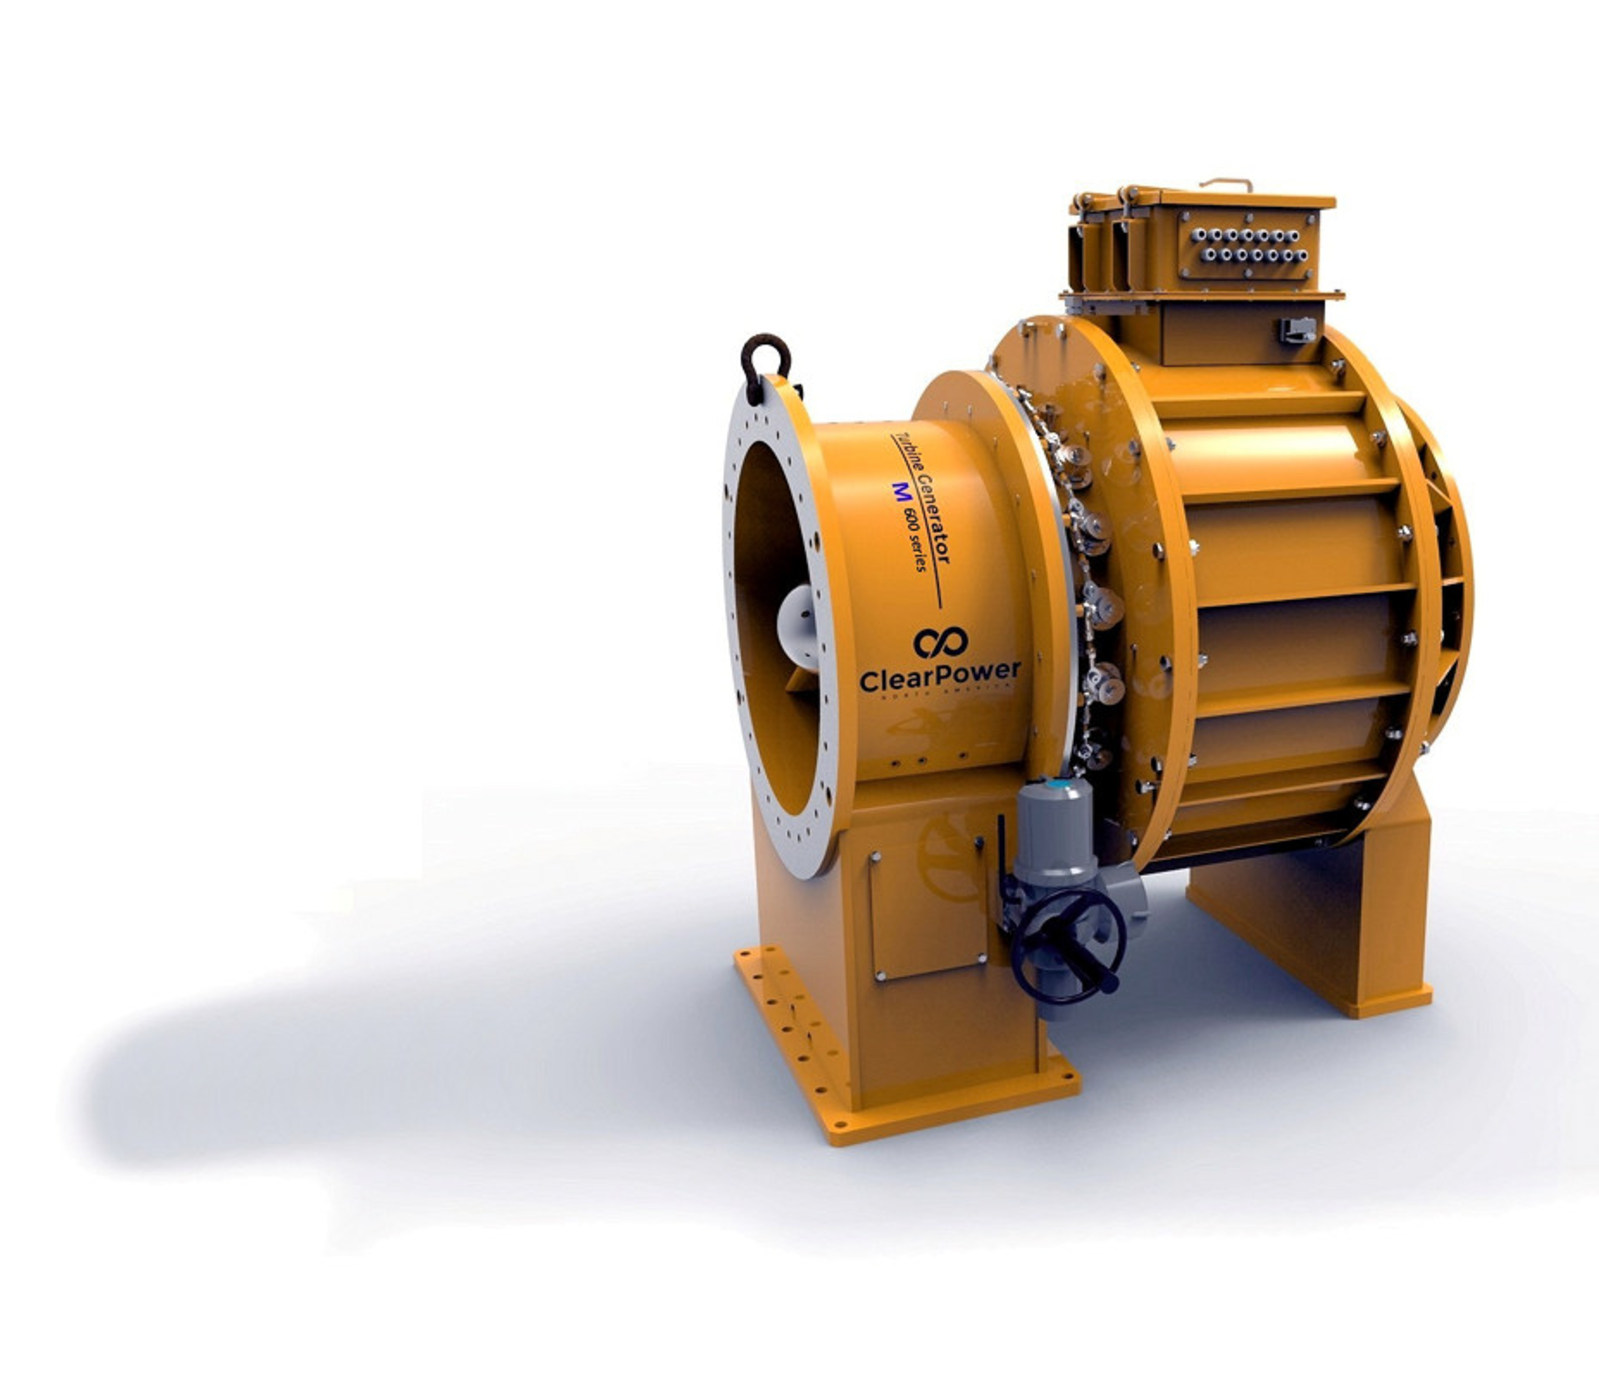 ClearPower Launches New ITG M Generator Converts Water Flow into